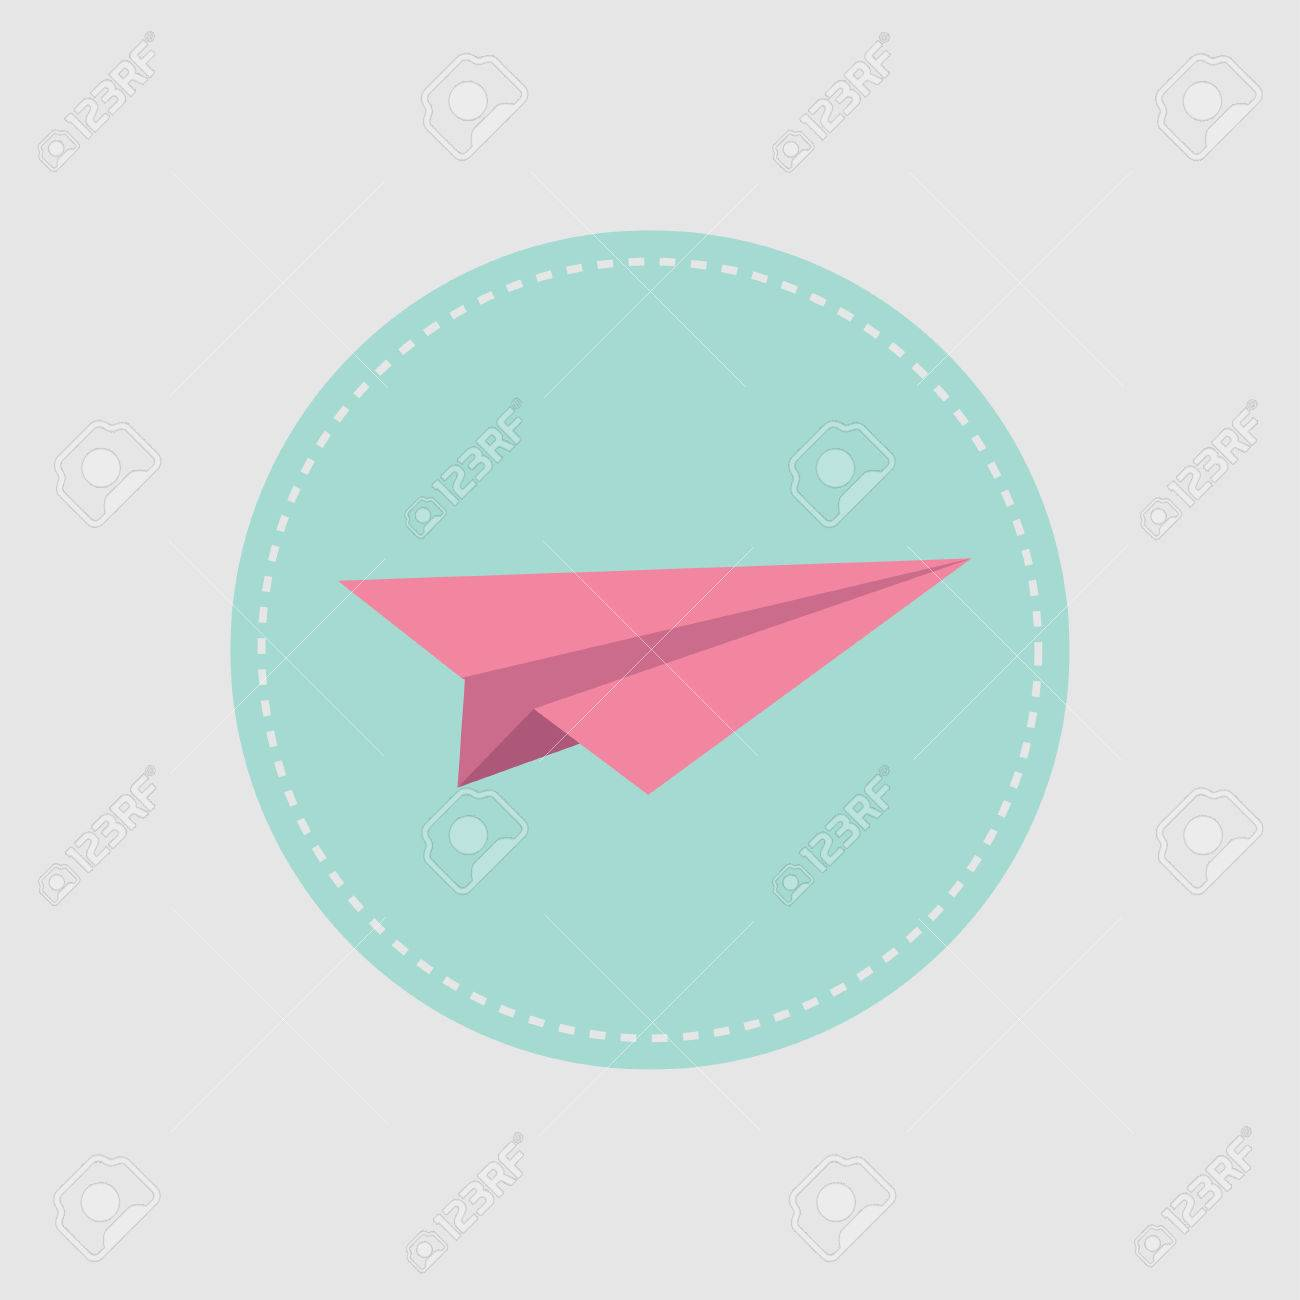 Origami Paper Plane Icon Round Dash Line Flat Design Style Vector Illustration Stock